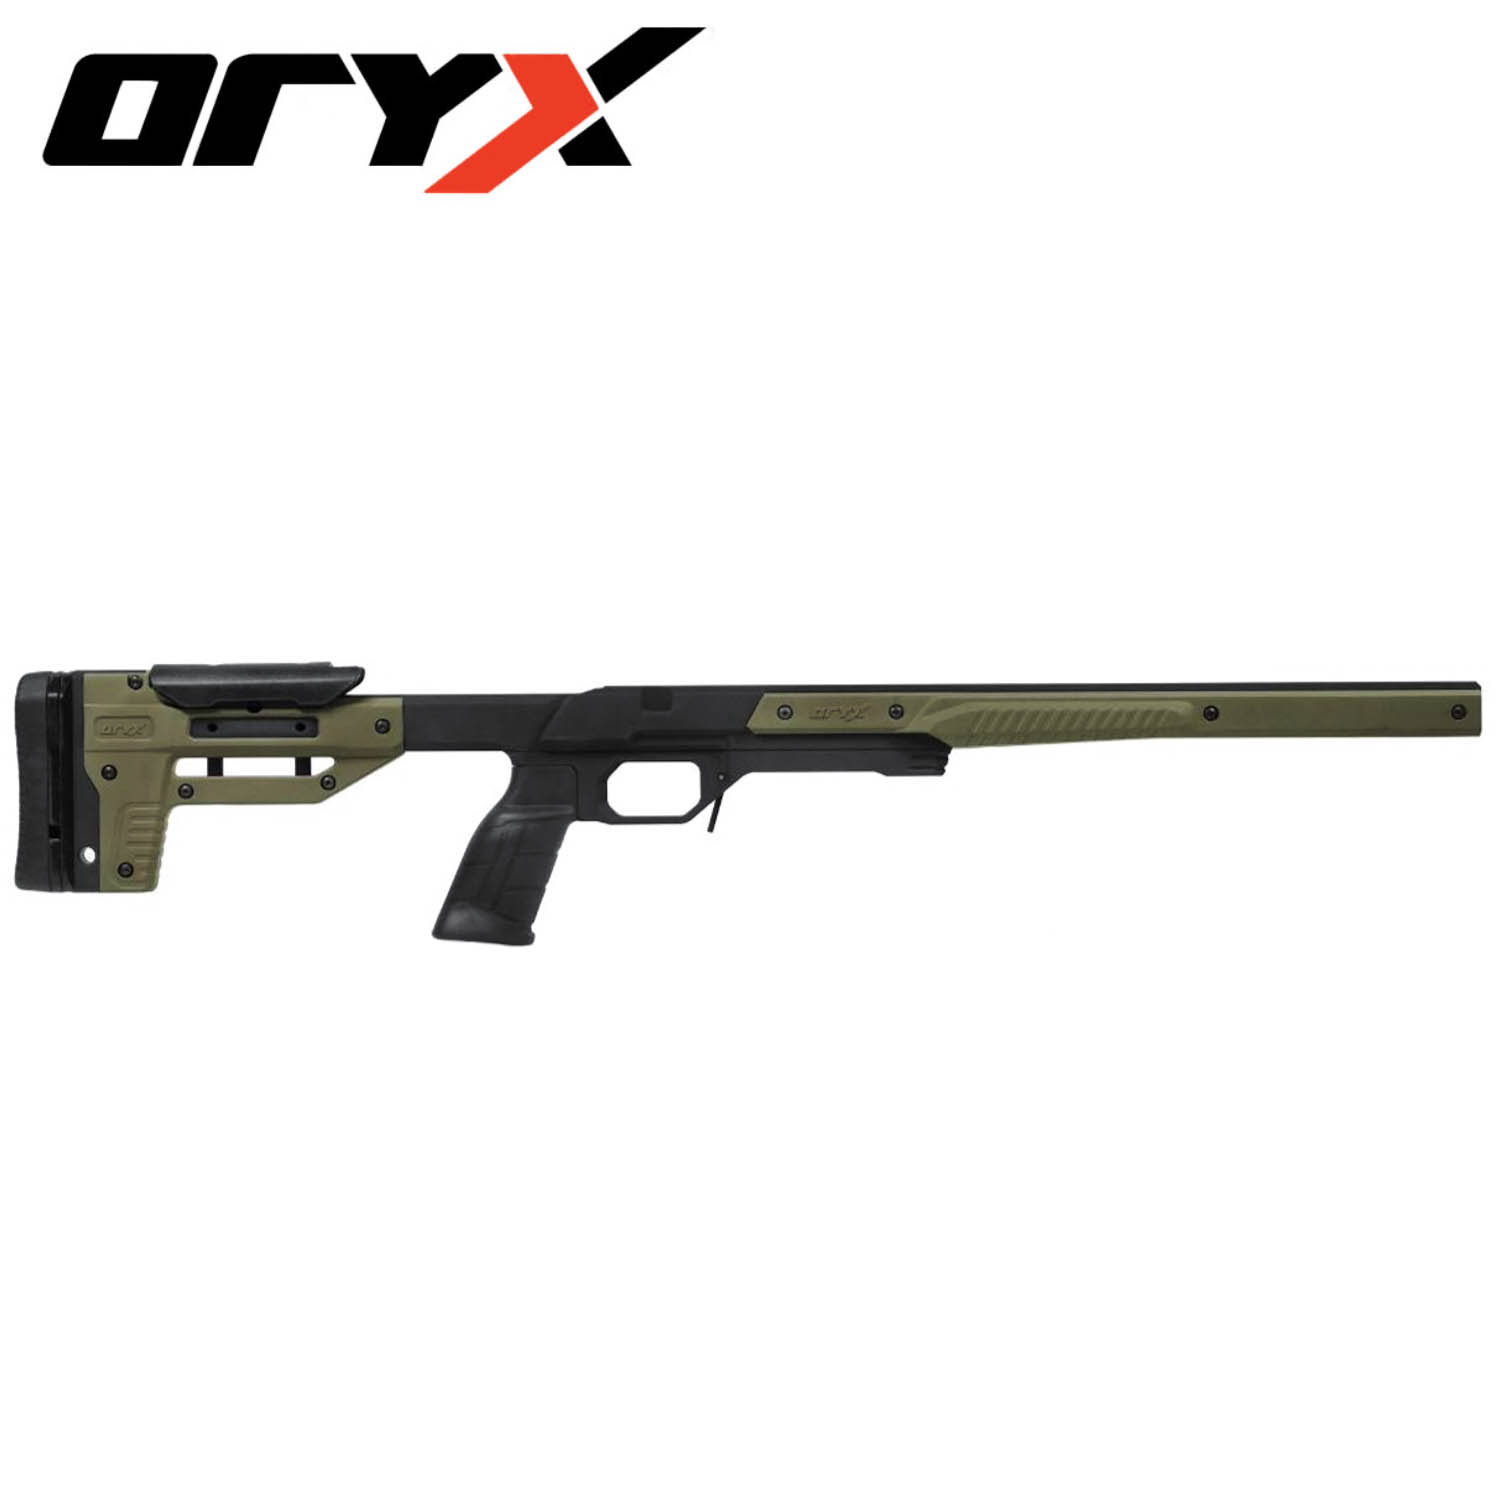 Oryx Rifle Chassis, Tikka T3 Short Action, Black / OD Green: Midwest Gun  Works